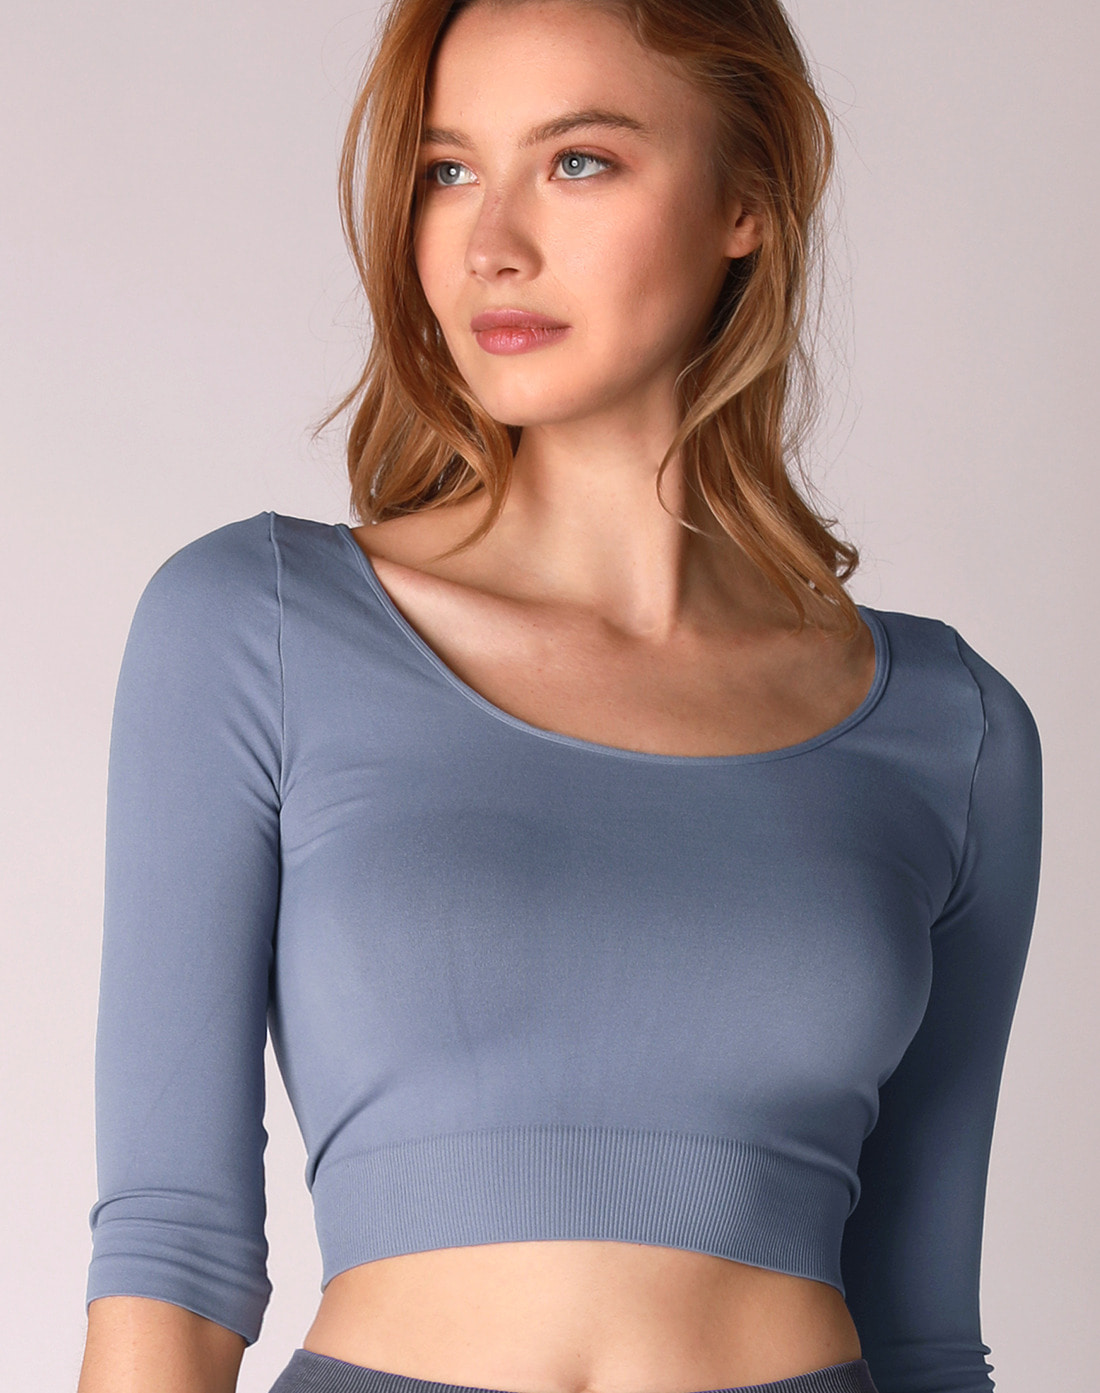 Half Sleeve Crop Top (VK2TS444)